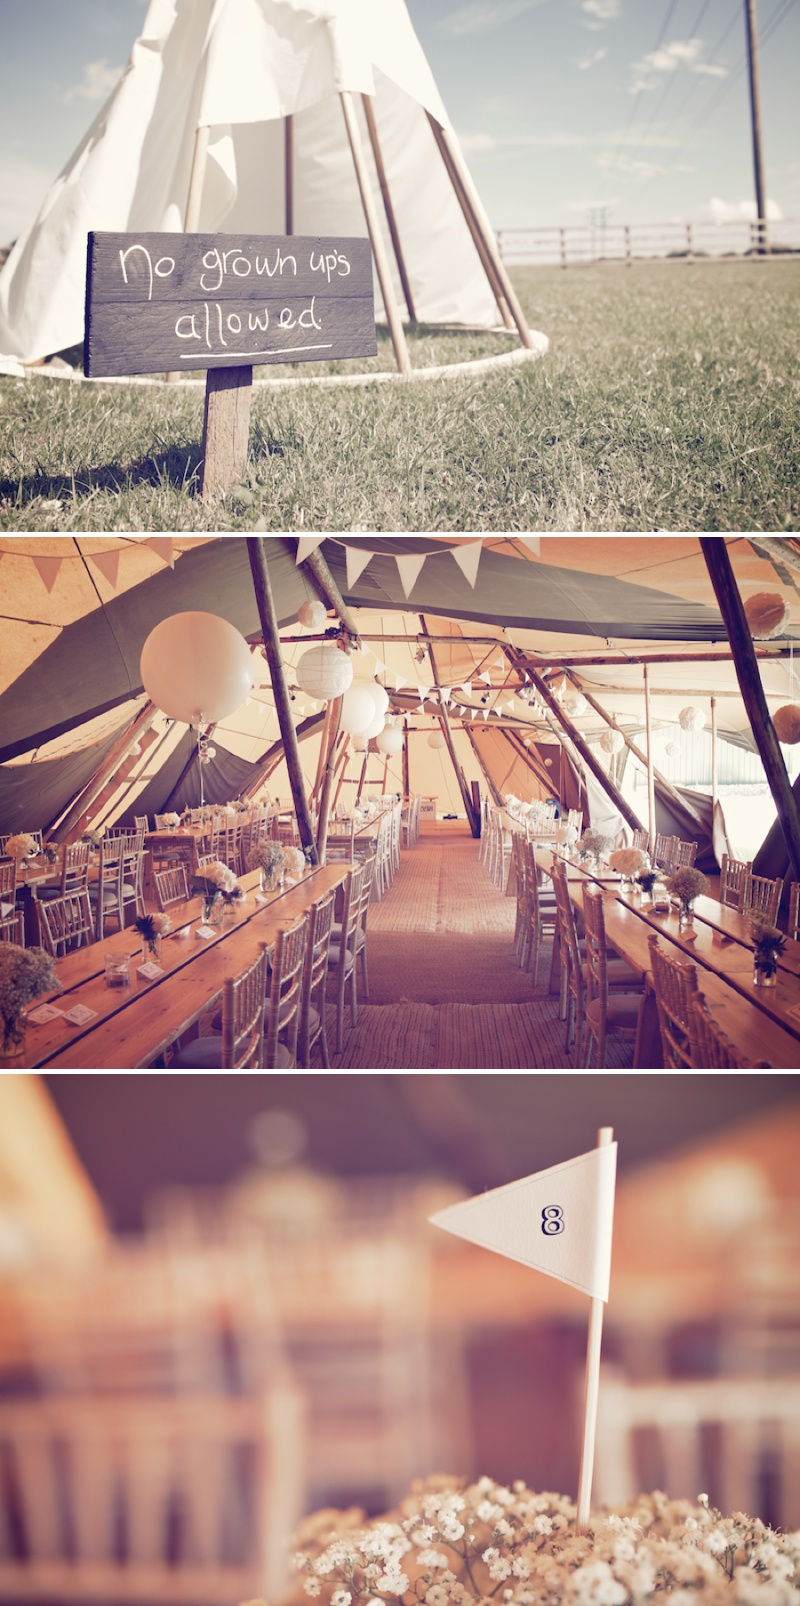 An Ethereal Bohemian Inspired Wedding At Standlow Farm With Tipis From Papakata A David Fielden Dress And Juliet Cap Veil With A Sweet Avalanche Rose Bouquet 7 Silver Words.